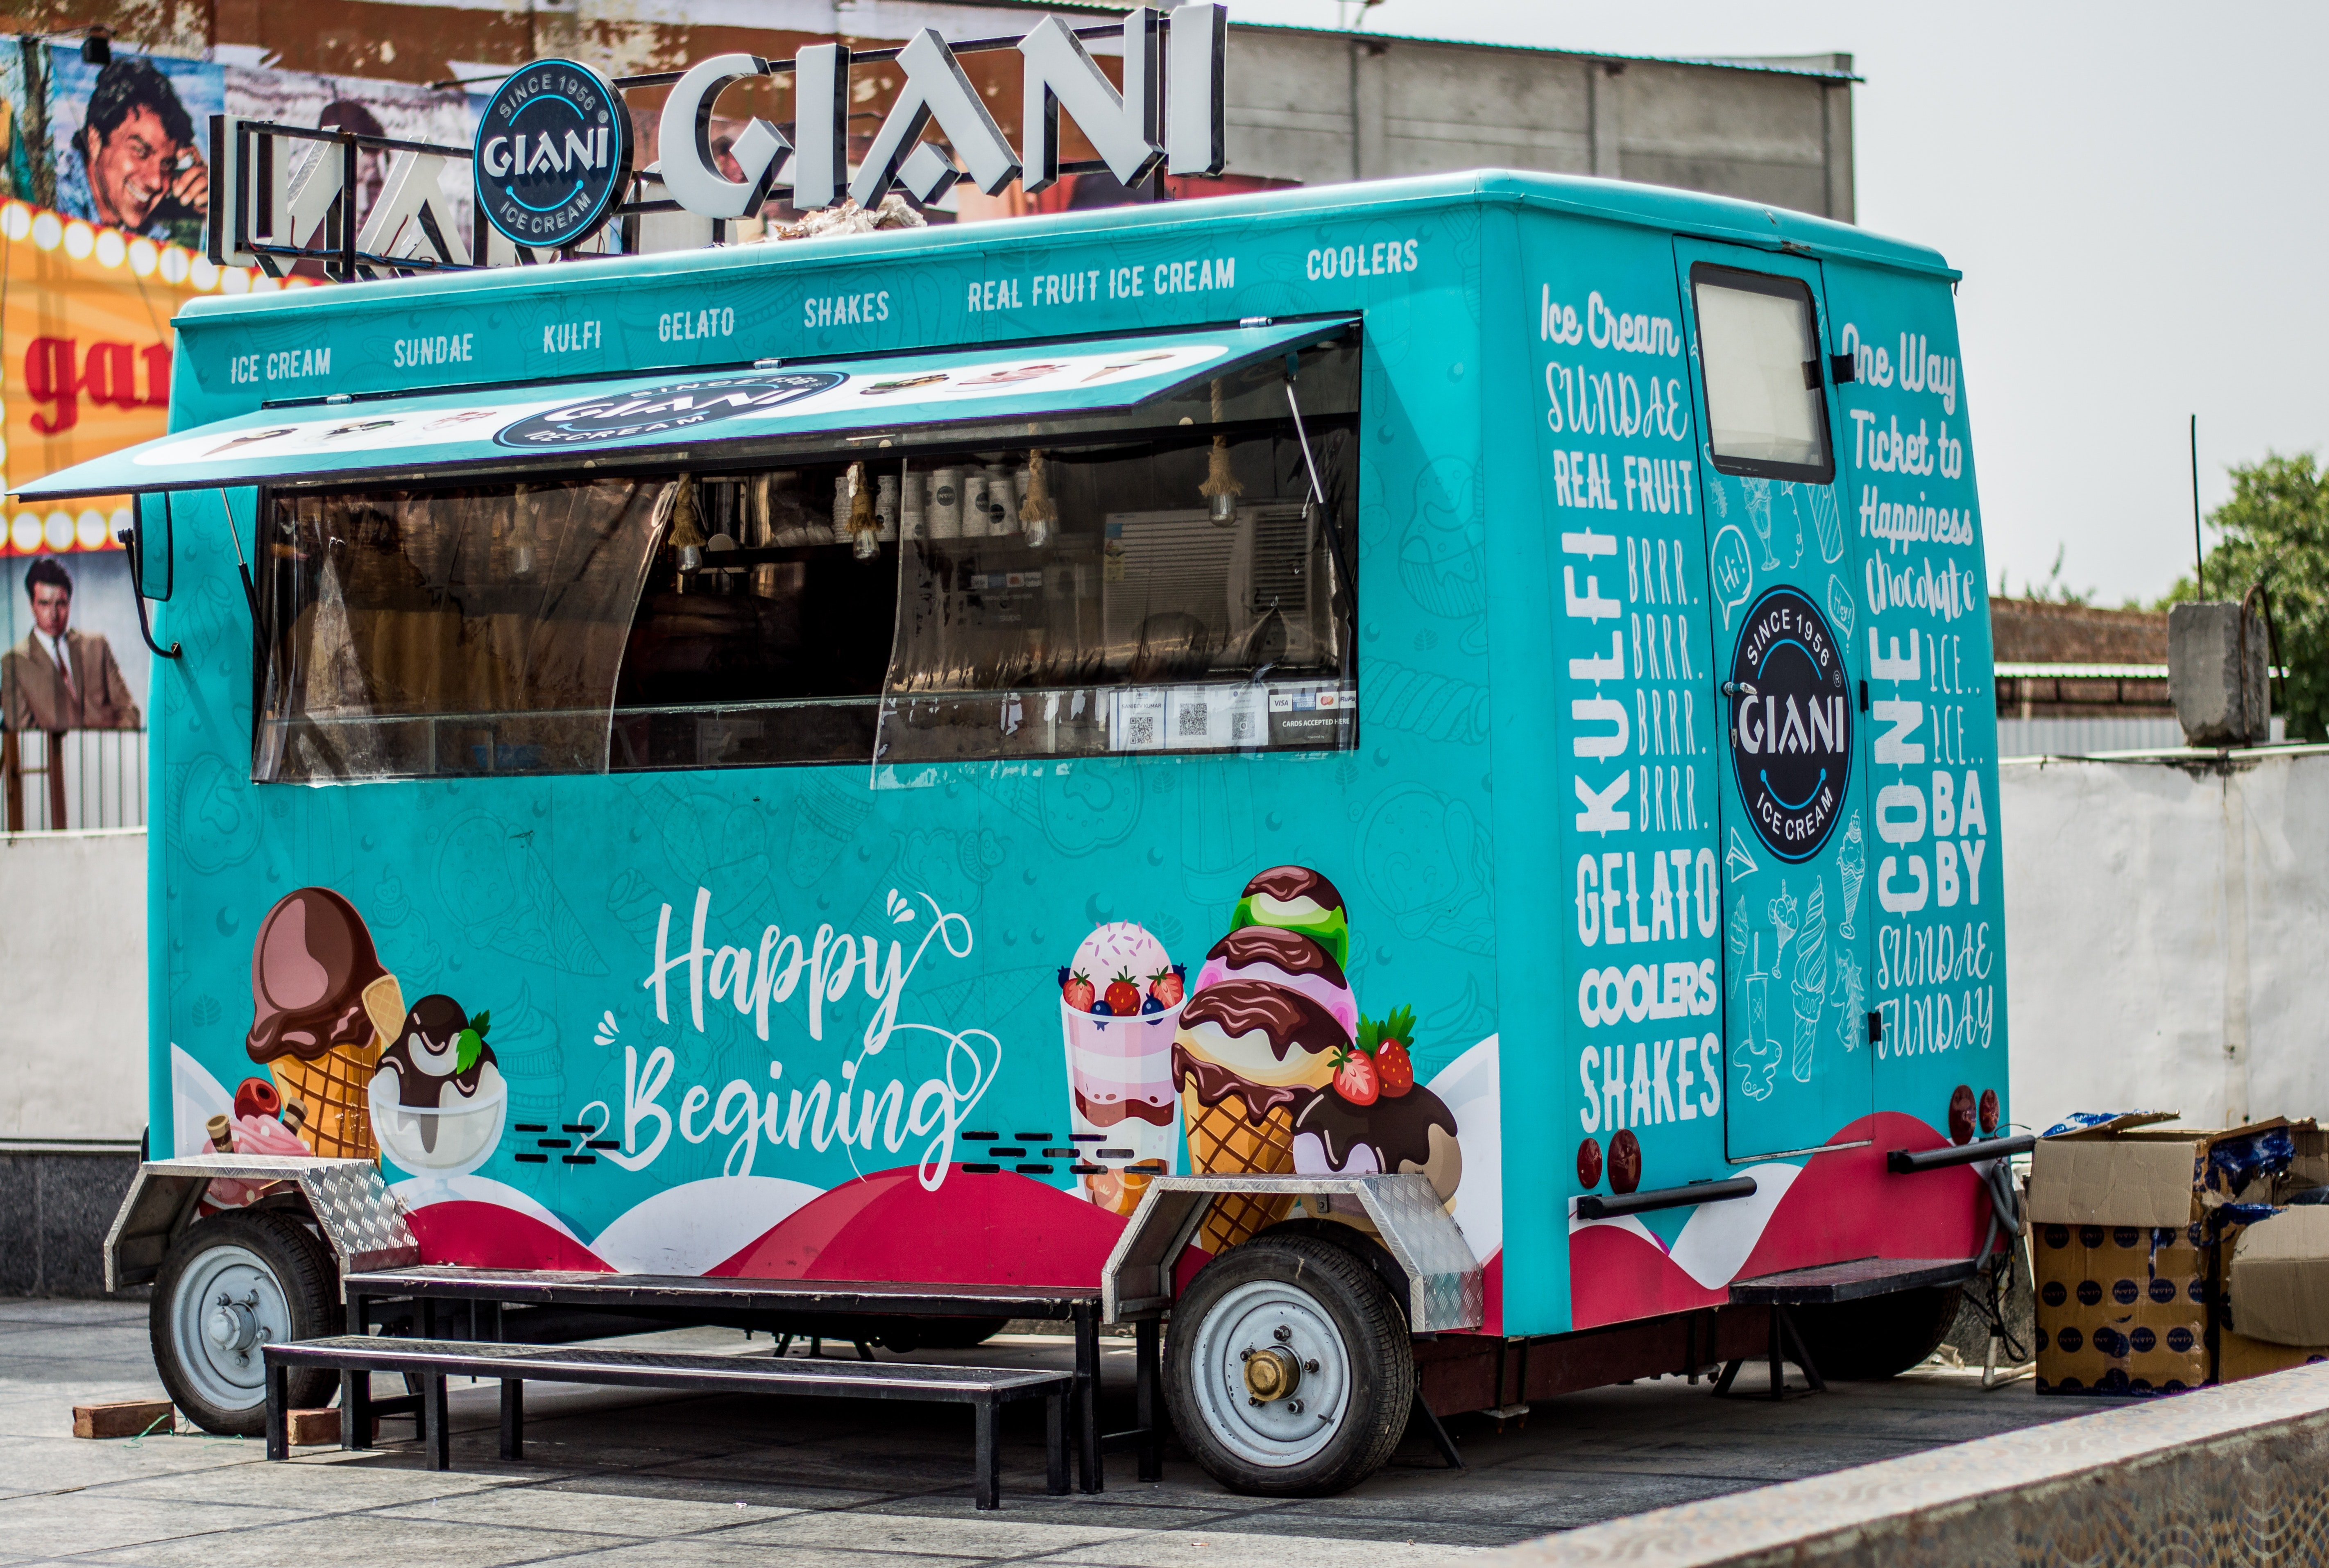 A blue ice cream truck with the words 'Happy Beginning' painted on the side is open for business   Photo: Pexels/Prithpal Bhatia